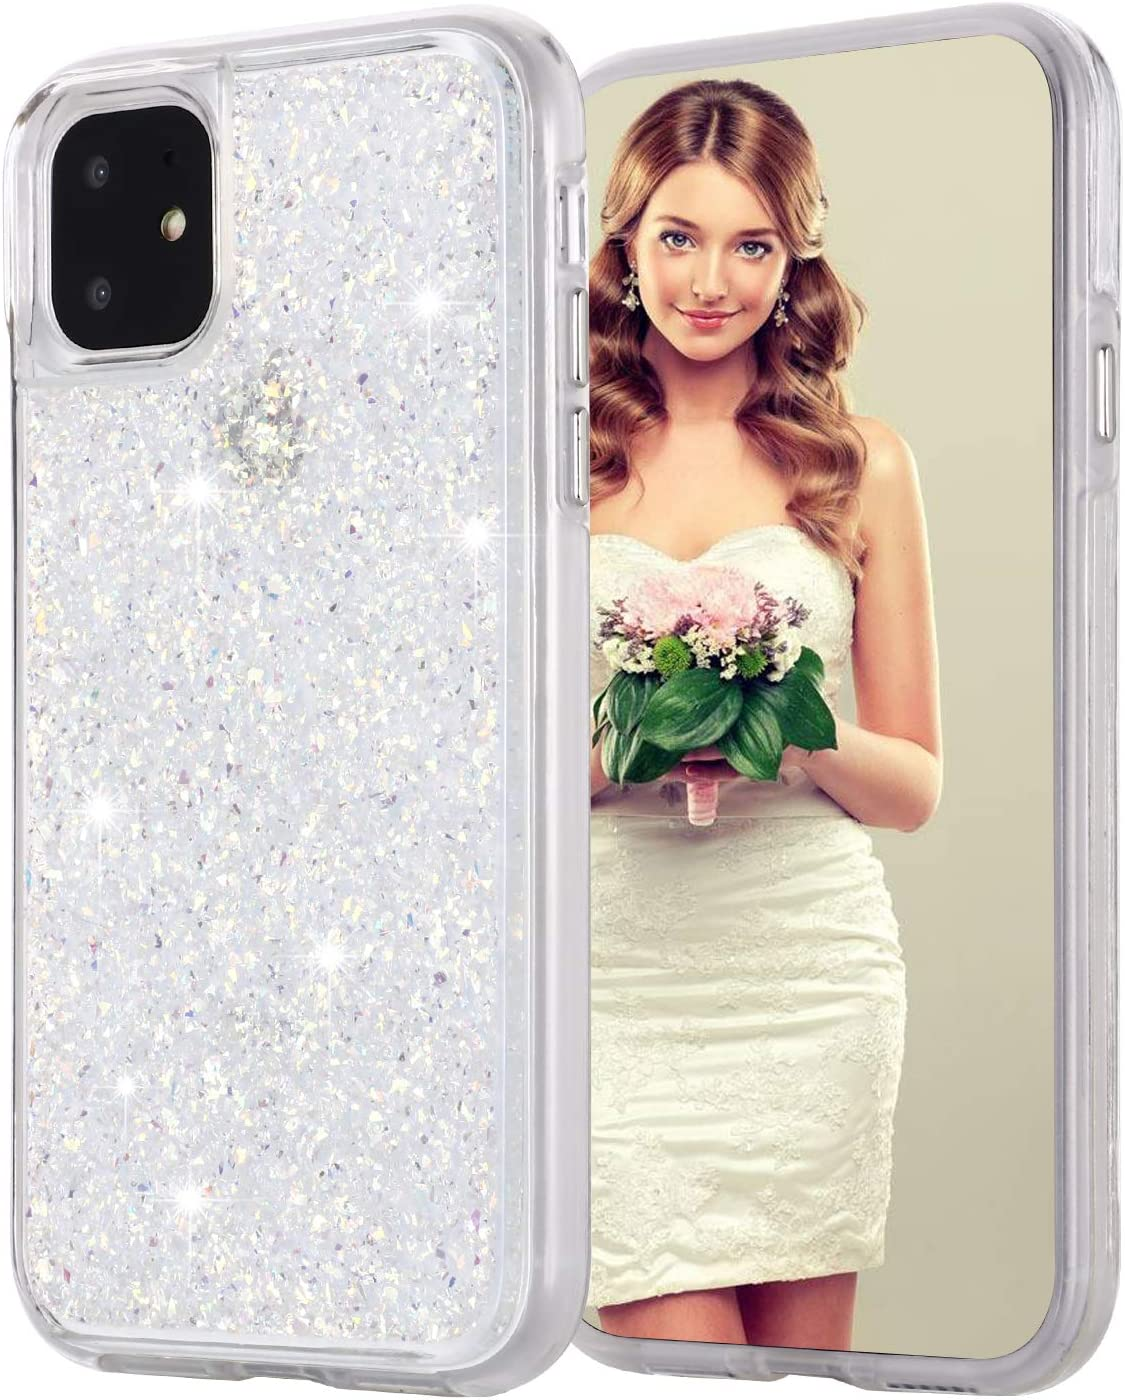 iPhone 8 Plus Case, Inkomo Women Luxury Fashion Glitter Gold Foil Sparkle Hard Back Cover with Clear TPU Bumper Protective Phone Bling Case for iPhone 8 Plus / 7 Plus / 6s Plus 5.5'' (White / Gold)